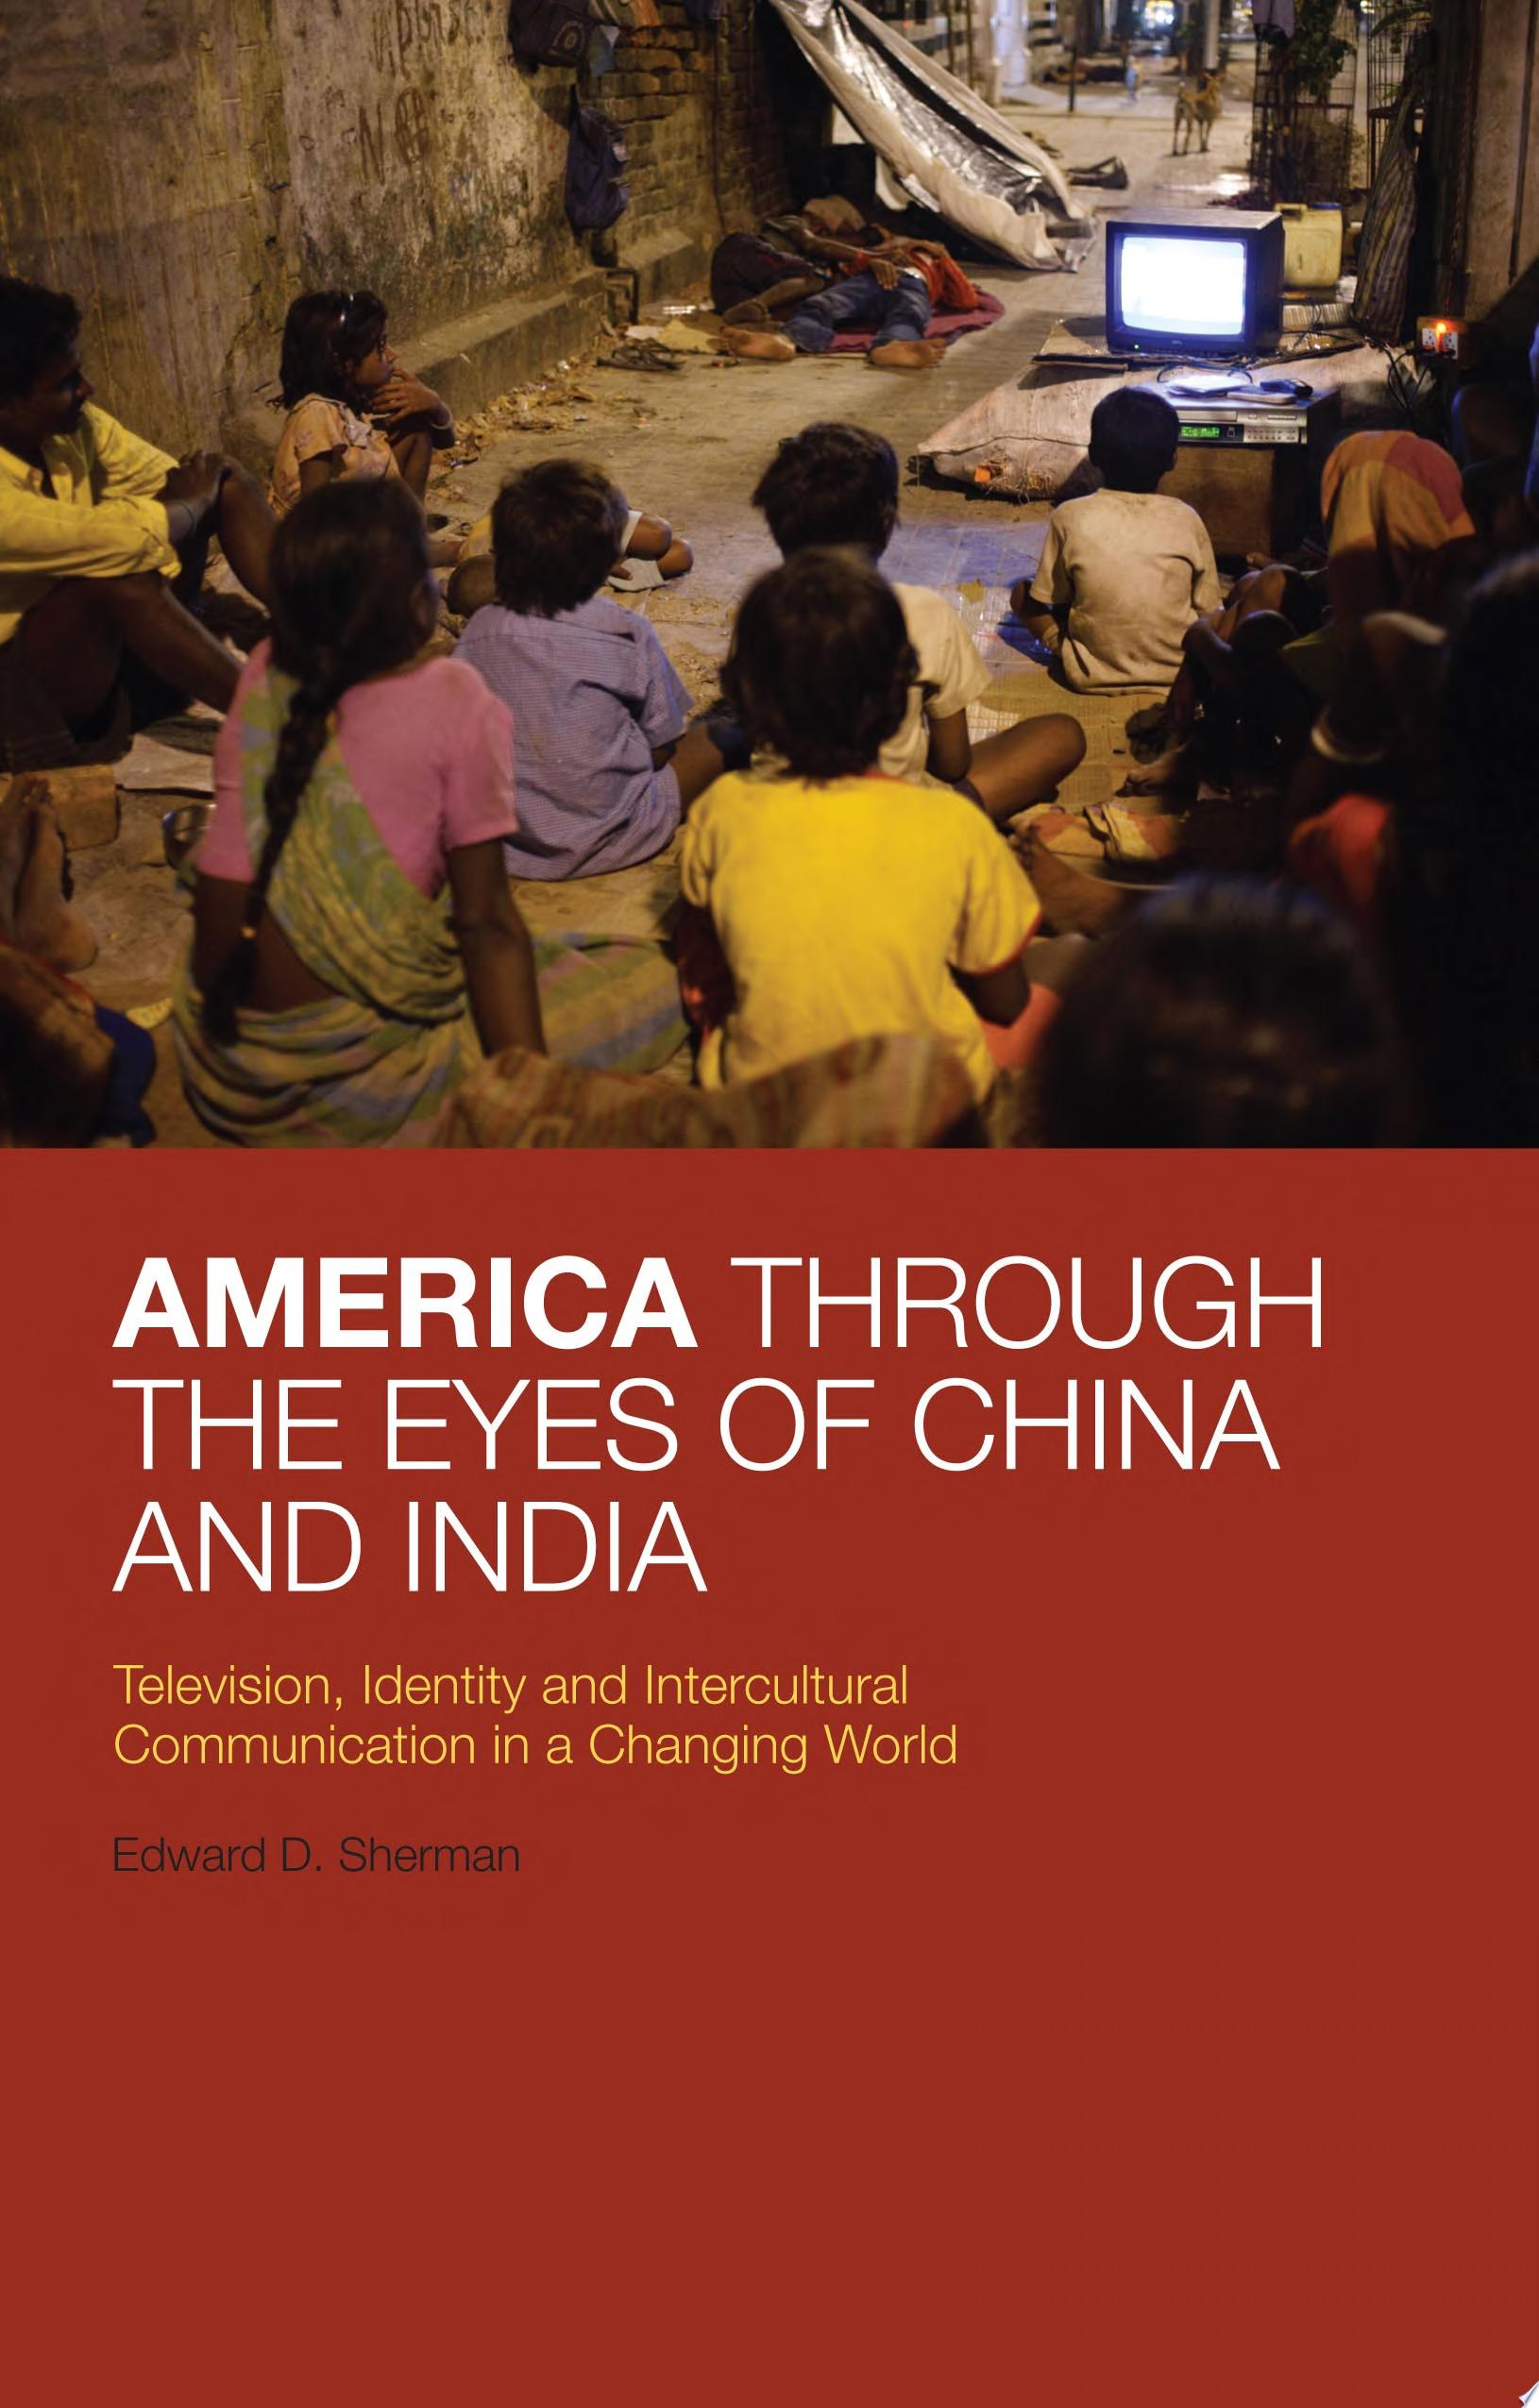 America Through the Eyes of China and India